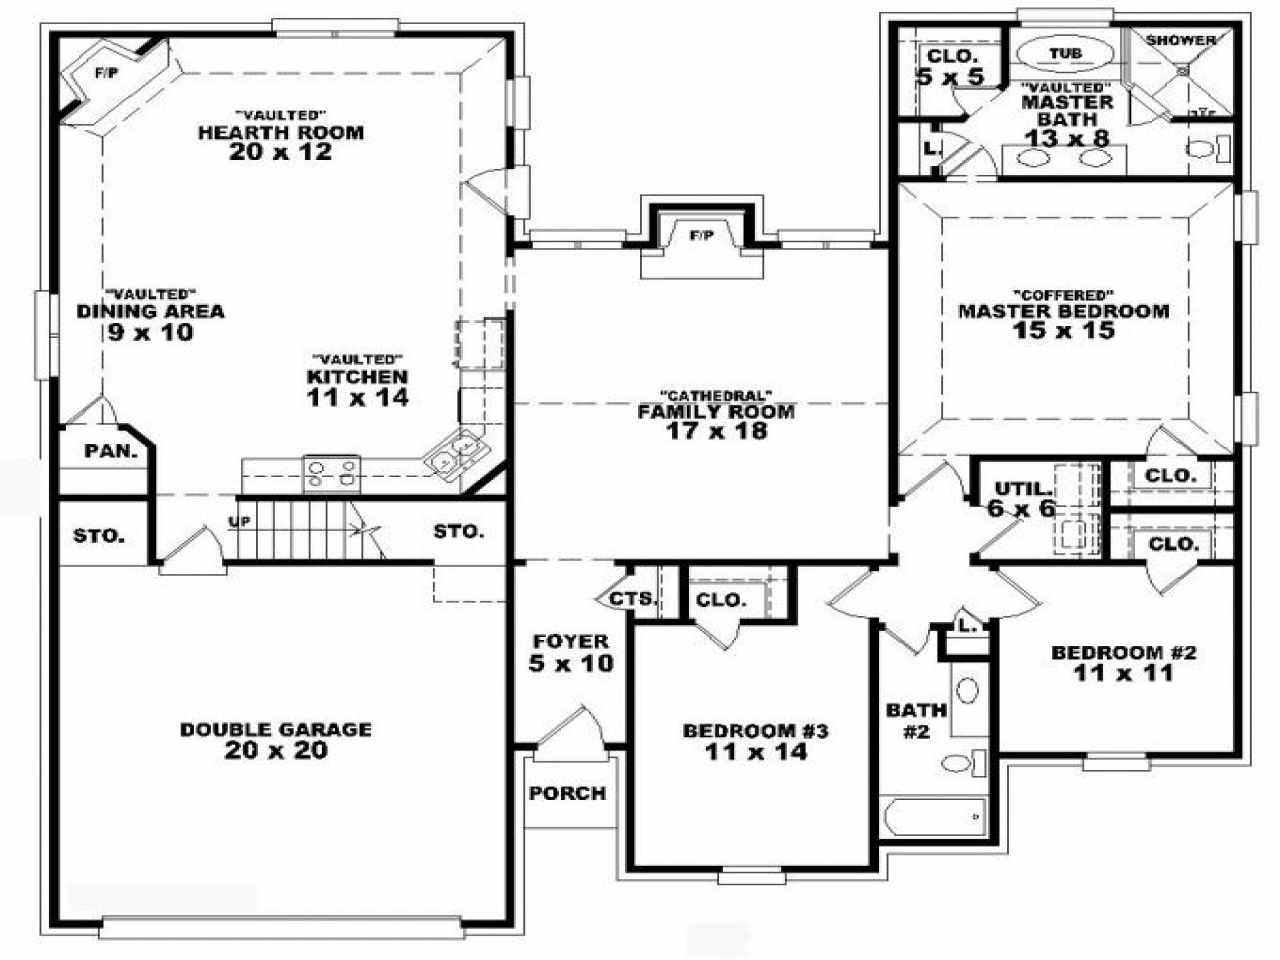 Bf864ae3ac1dd41e likewise 9v8v924 further 5 Bedroom Floor Plans further Fish House Floor Plans in addition 24 X 48 Home Plans. on mobile home cottages